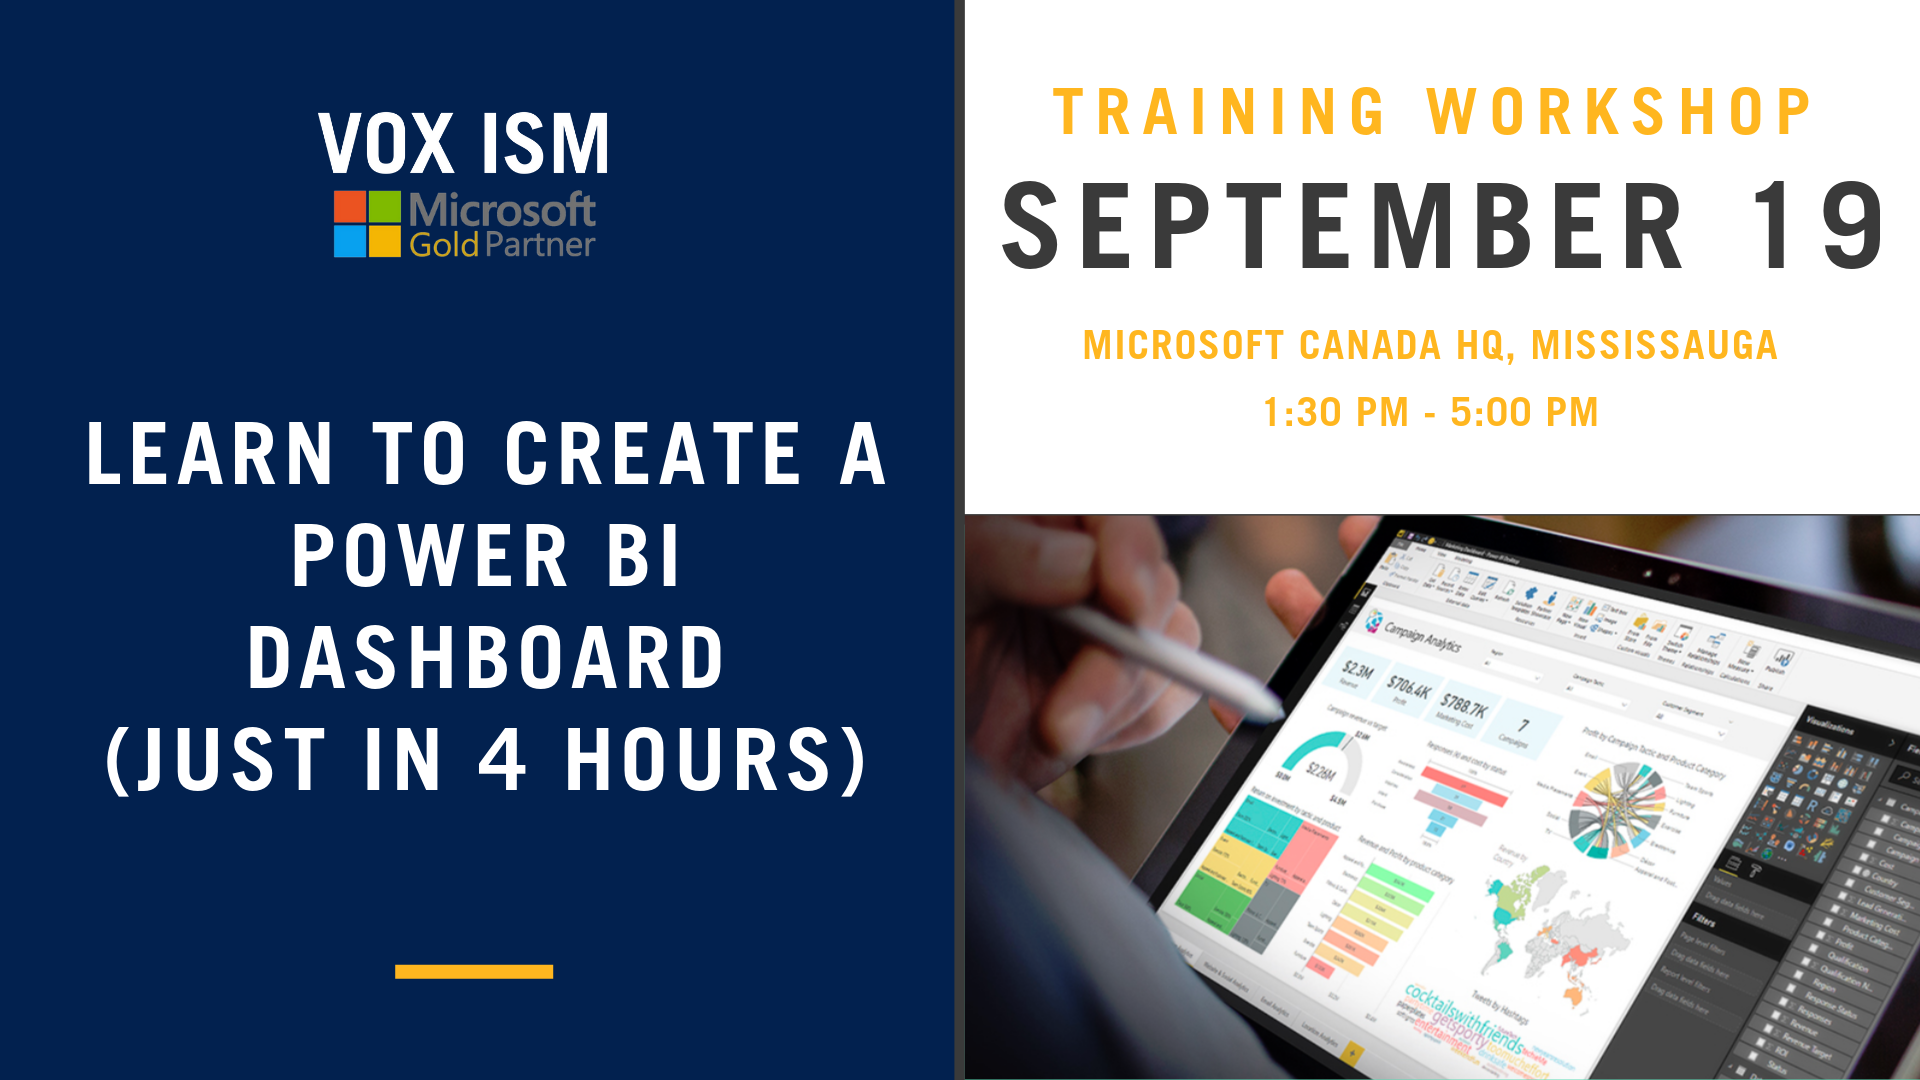 Learn to create Power BI Dashboards (just in 4 hours)- September 19 - Super Event - VOX ISM